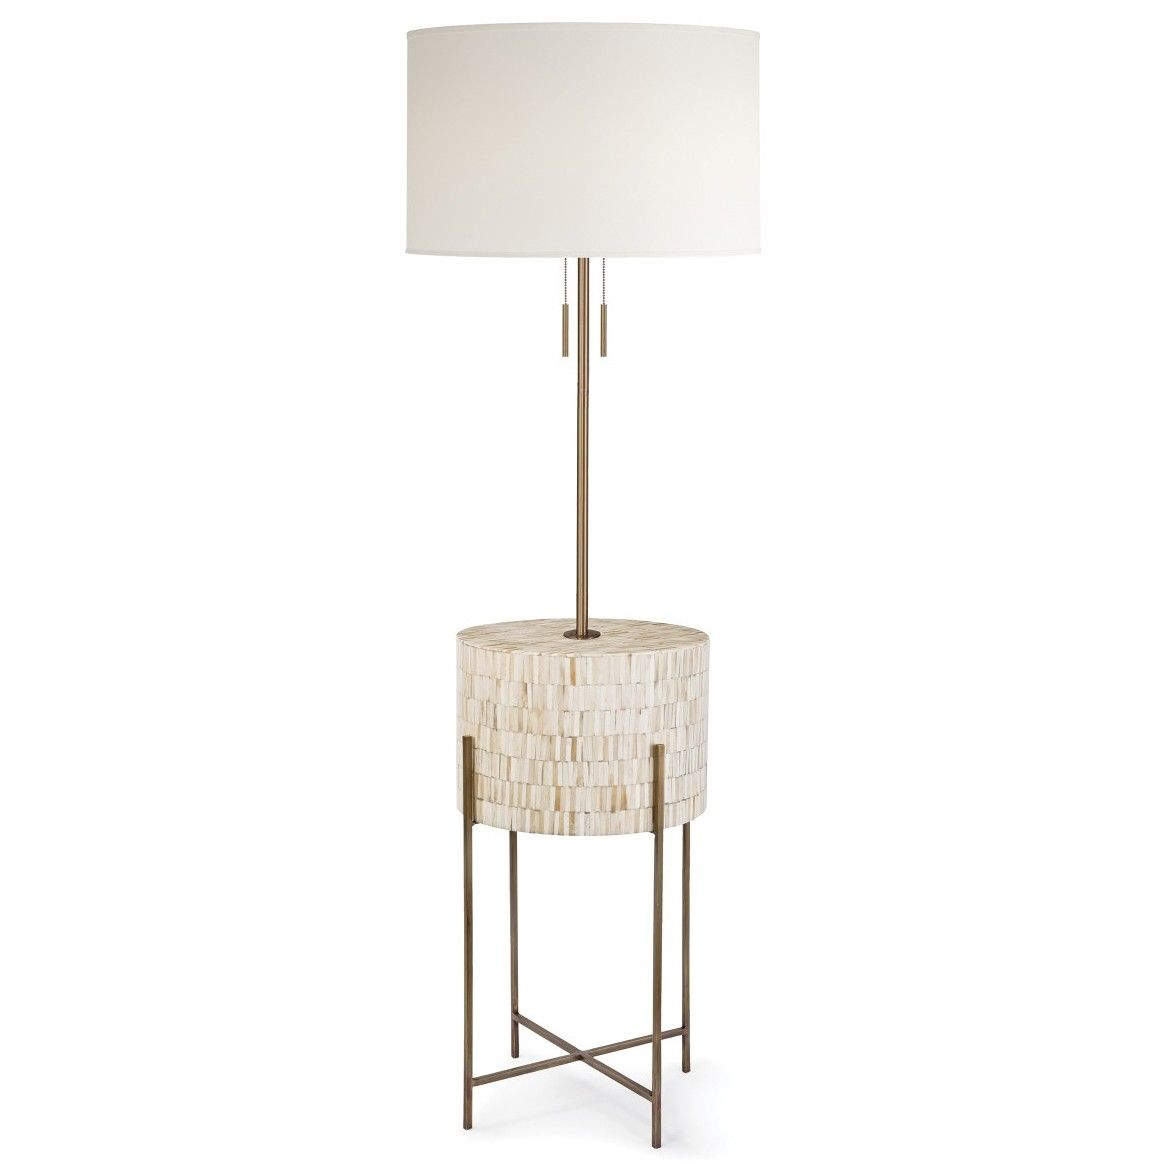 Regina andrew design resse floor lamp natural brass new lighting whats new candelabra inc